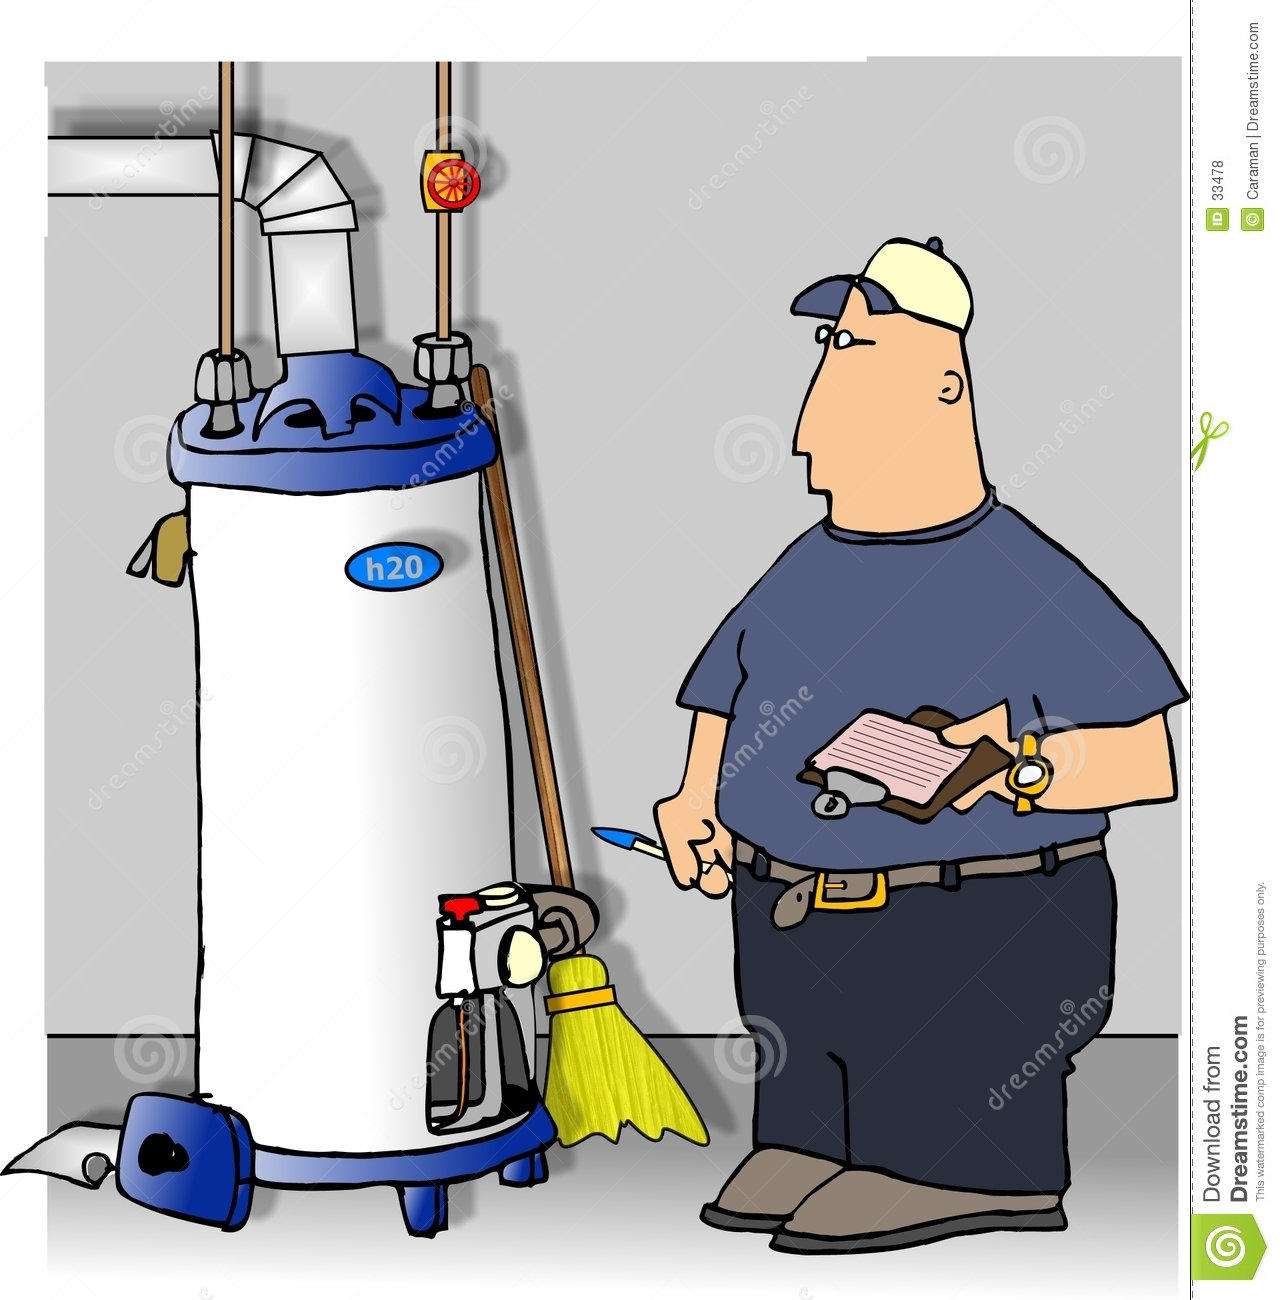 Serviceman Checking A Water Heater Royalty Free Stock ...